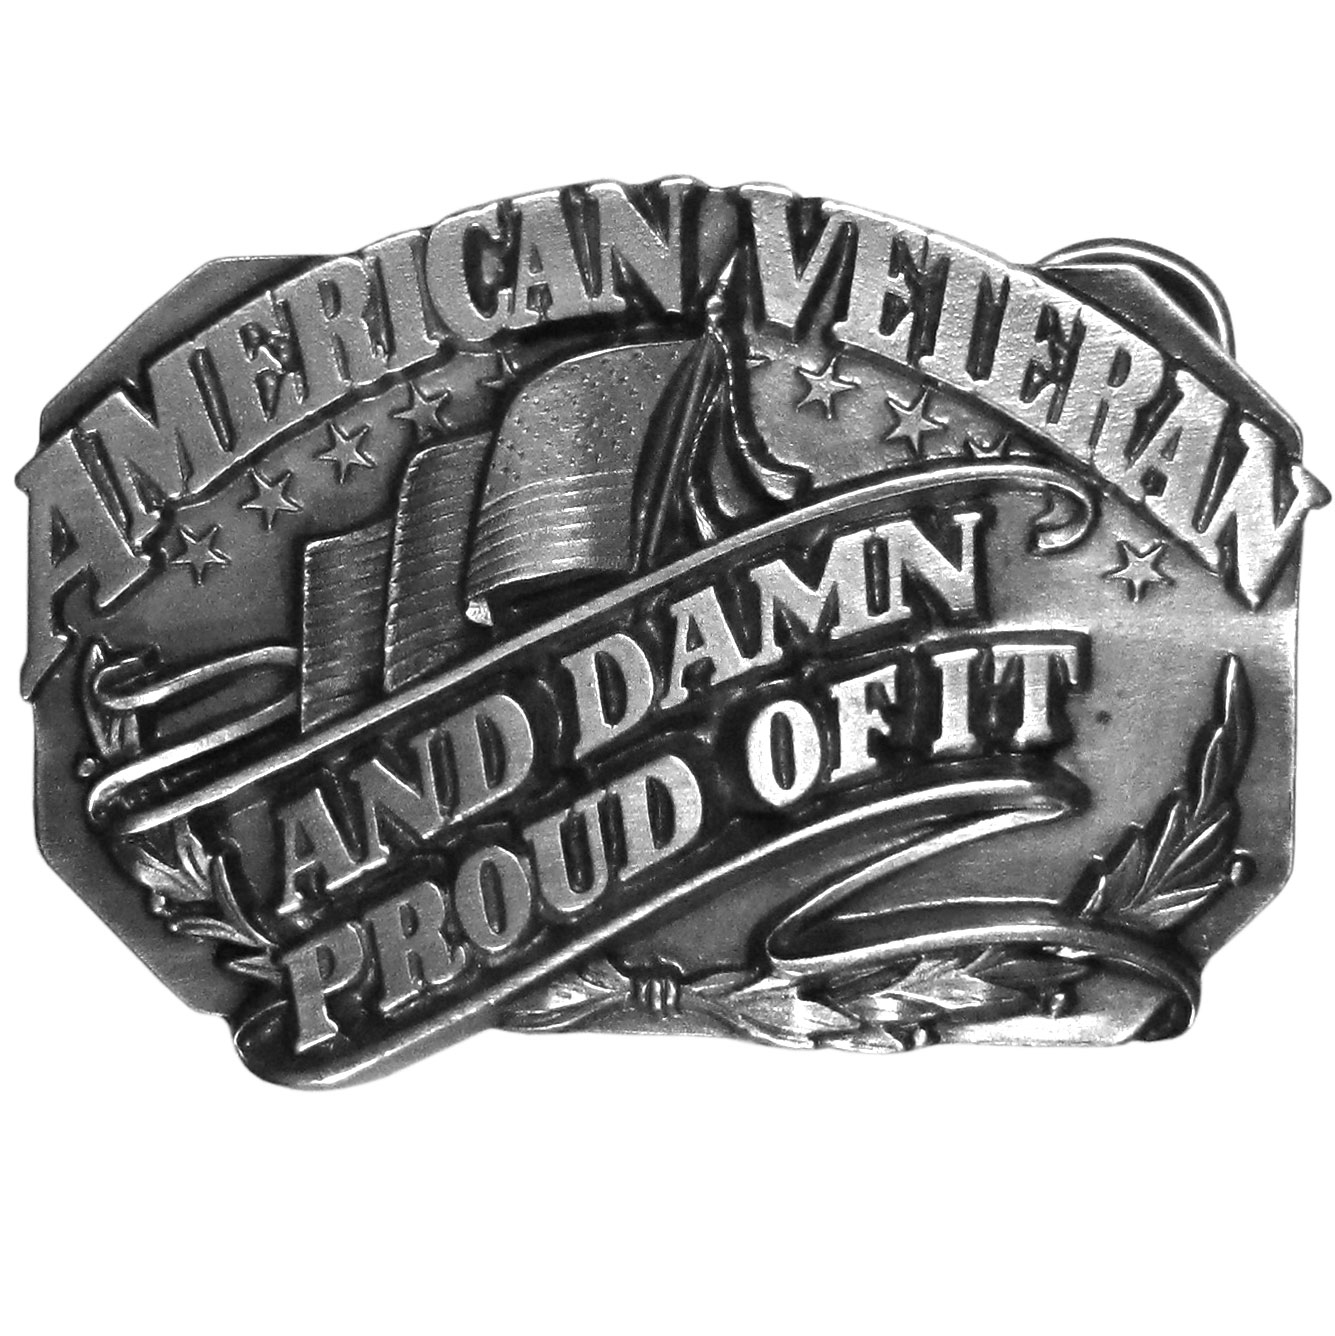 "American Veteran and Damn Proud of it Antiqued Belt Buckle - """"""American Veteran and Damn Proud of It"""" is written in bold across this belt buckle.  There is an American flag and stars as well.  On the back are the words, """"To those who have served in the cause of freedom...America says Thank You!""""  Finely sculpted and intricately designed belt buckle. Our unique designs often become collector's items."""